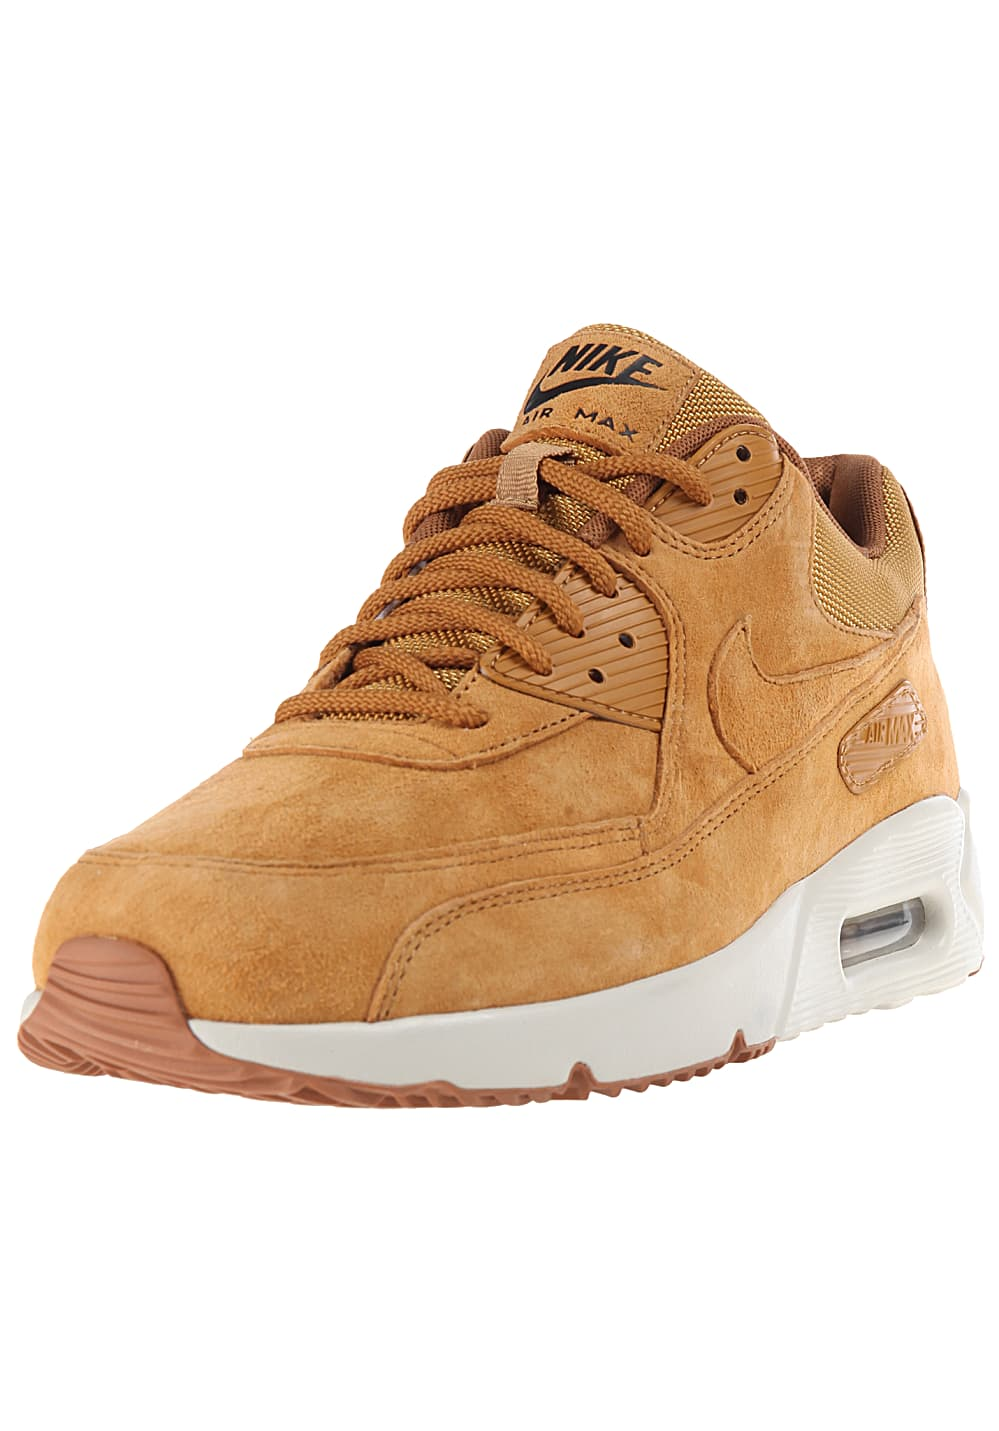 feb54029d6dde0 Next. -30%. This product is currently out of stock. NIKE SPORTSWEAR. Air  Max 90 Ultra 2.0 Ltr ...